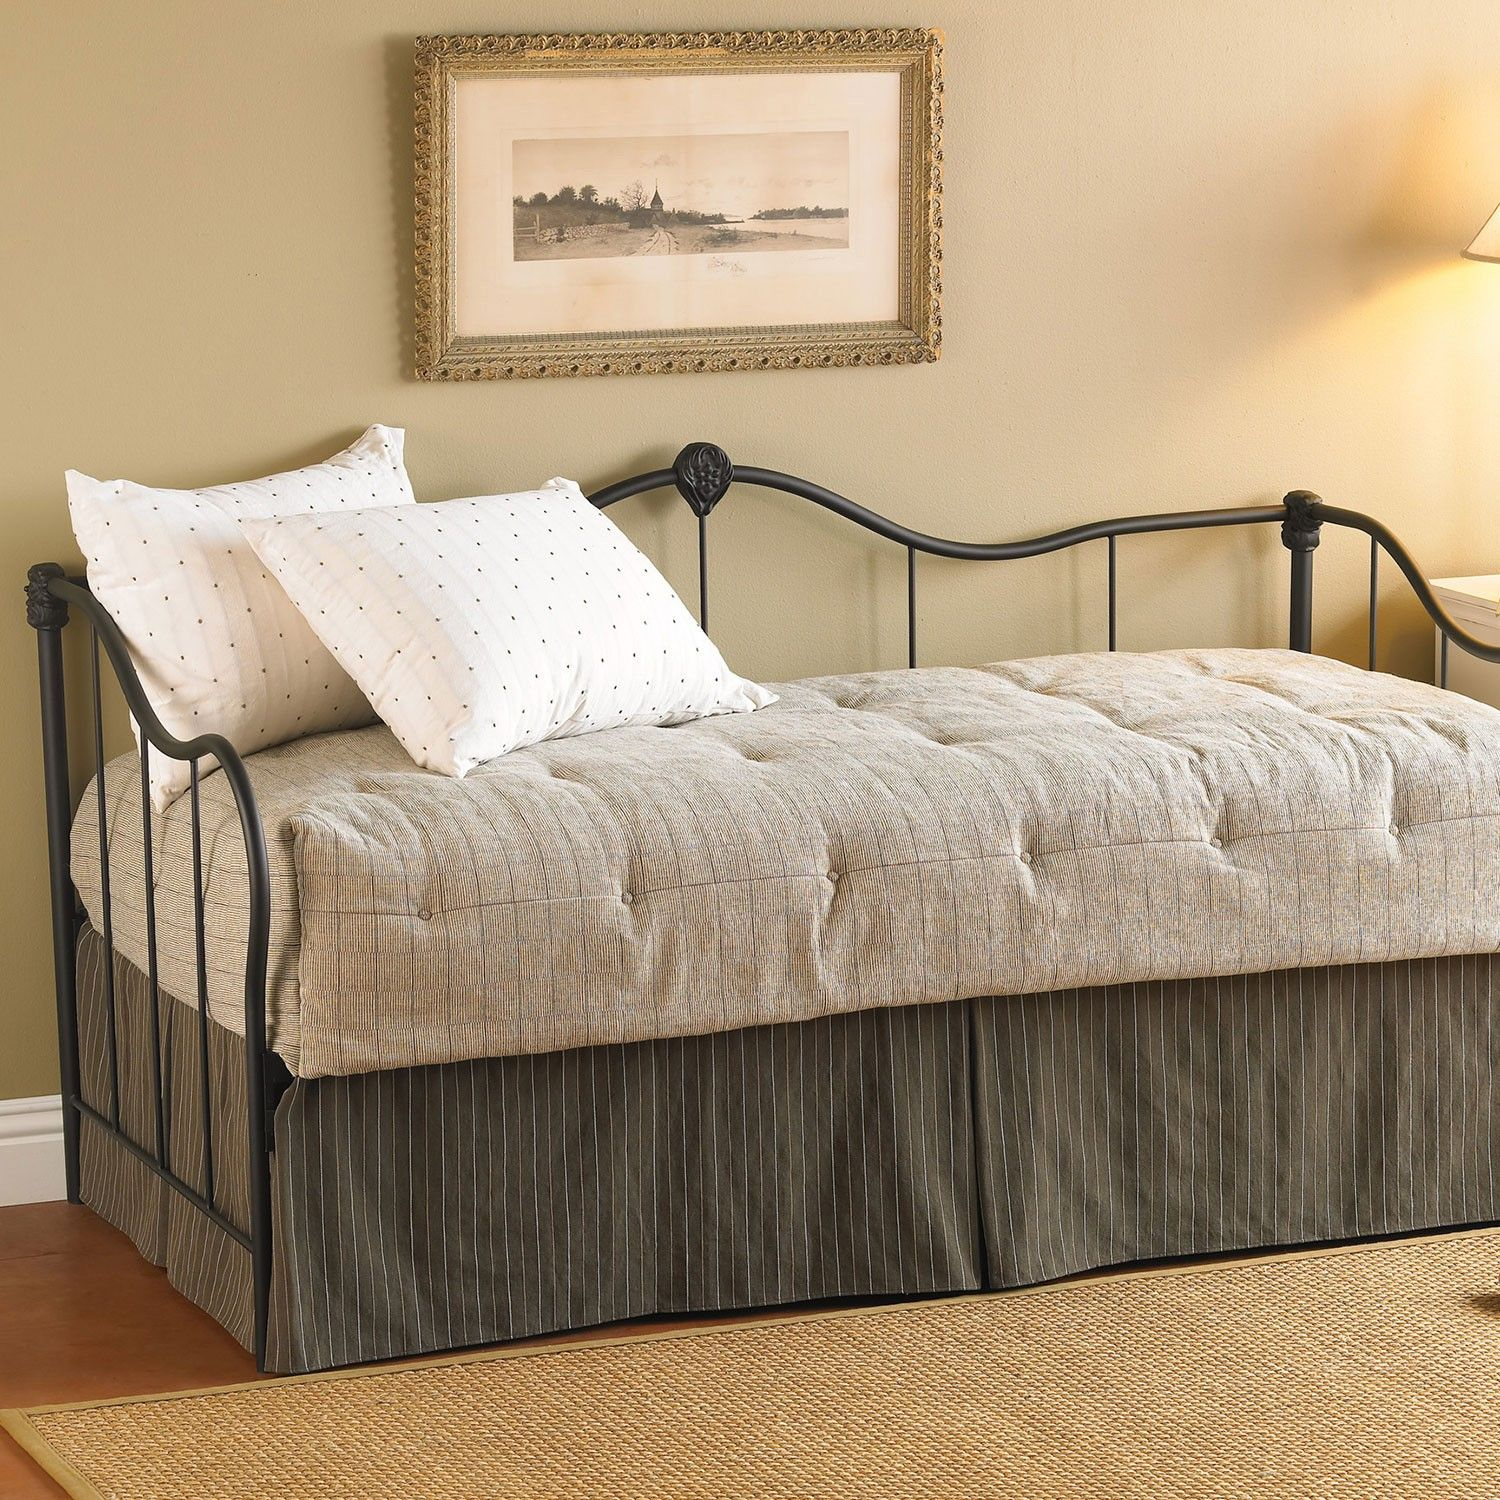 Best Best Tailored Daybed Cover 4 34276 Daybed design